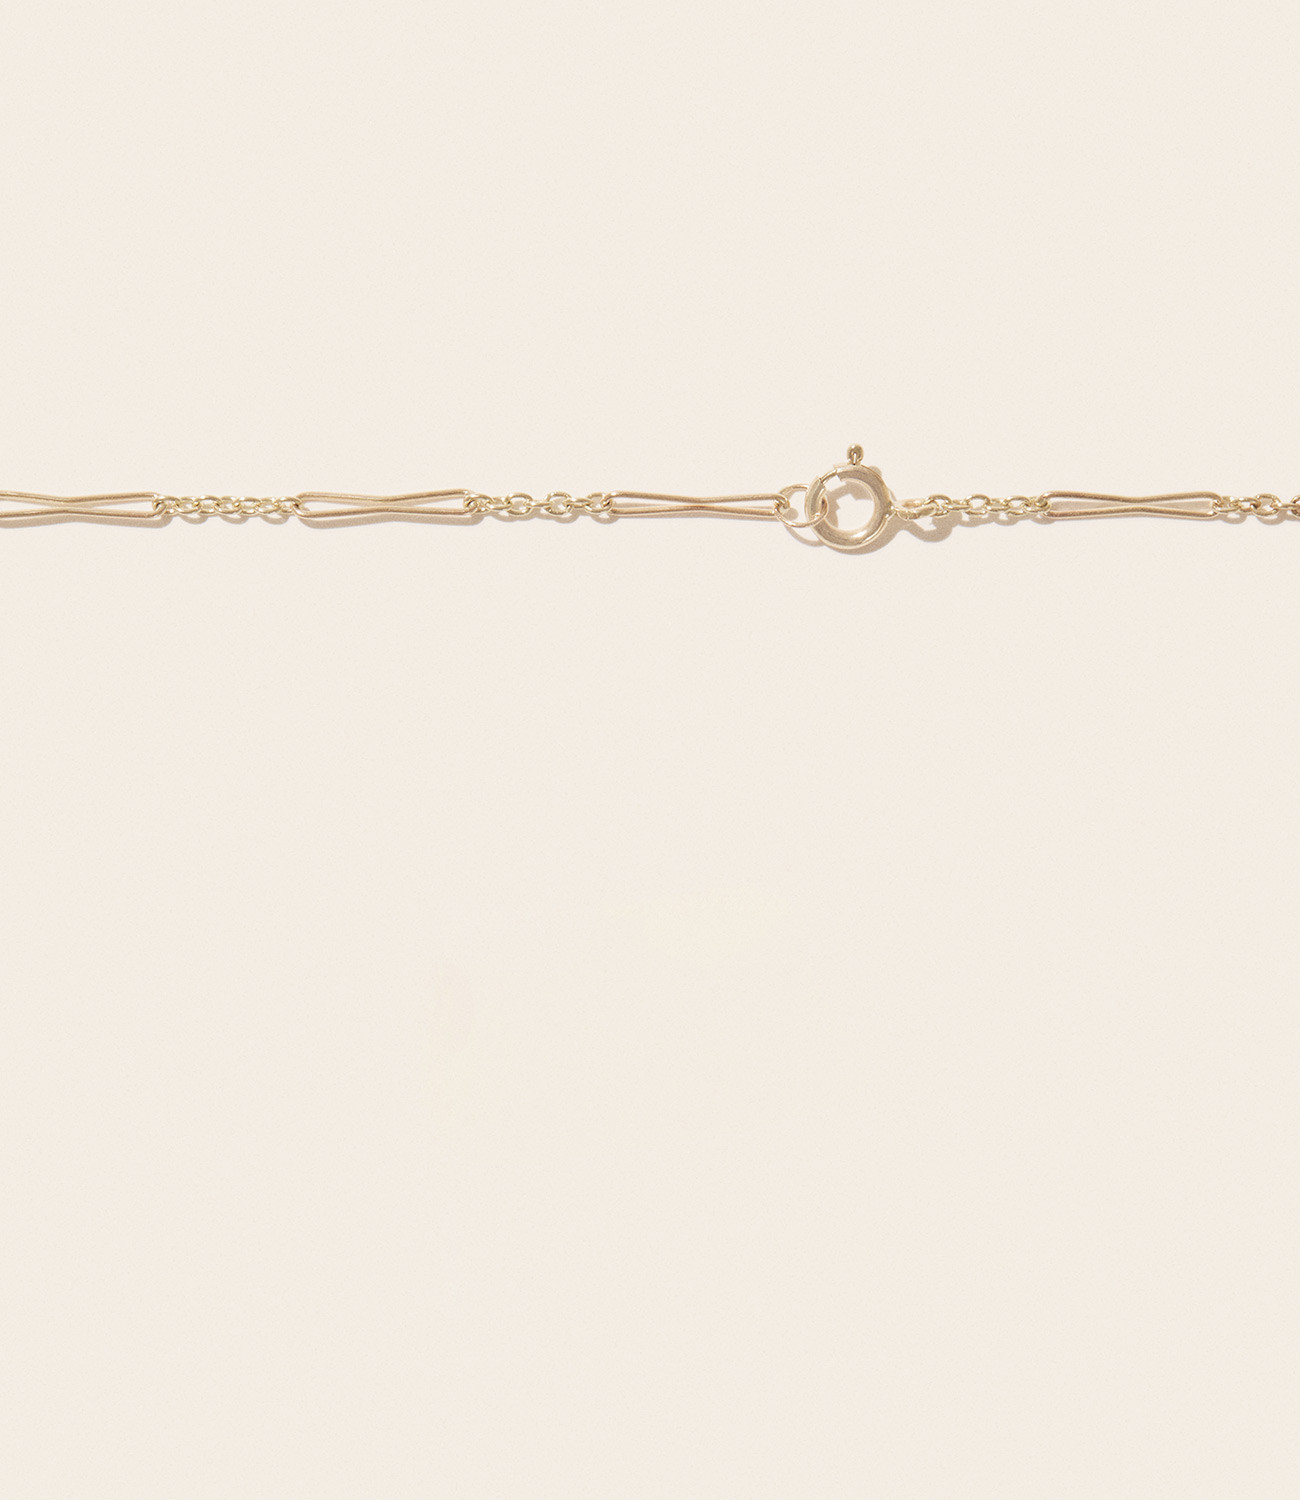 PETRA N°3 Collier